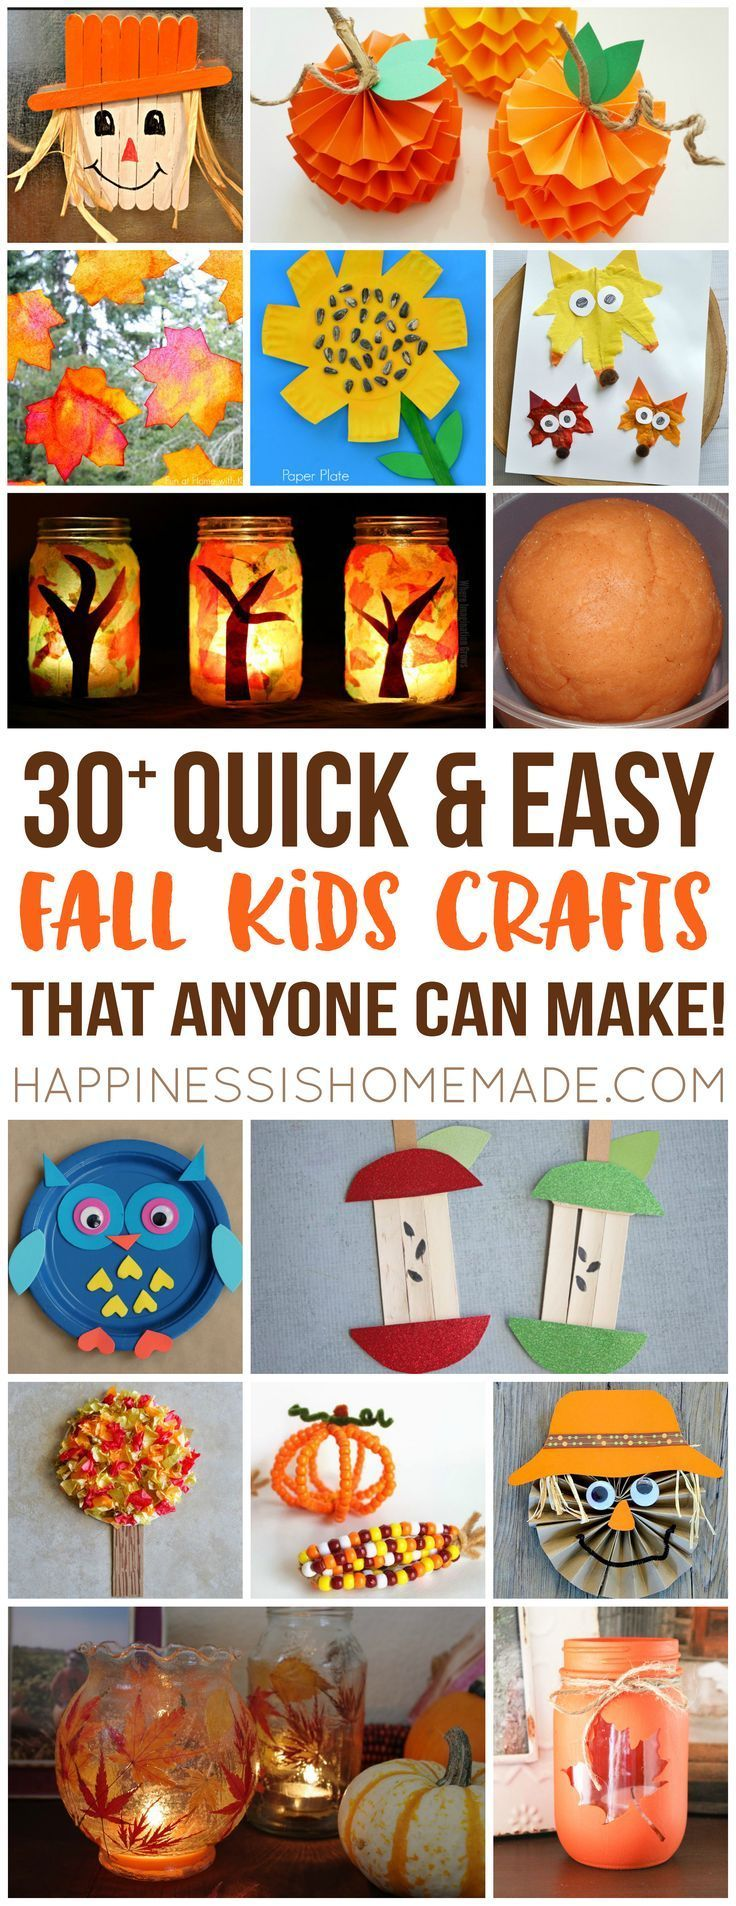 Wonderful Fall Halloween Craft Ideas Part - 11: Easy Fall Kids Crafts That Anyone Can Make!